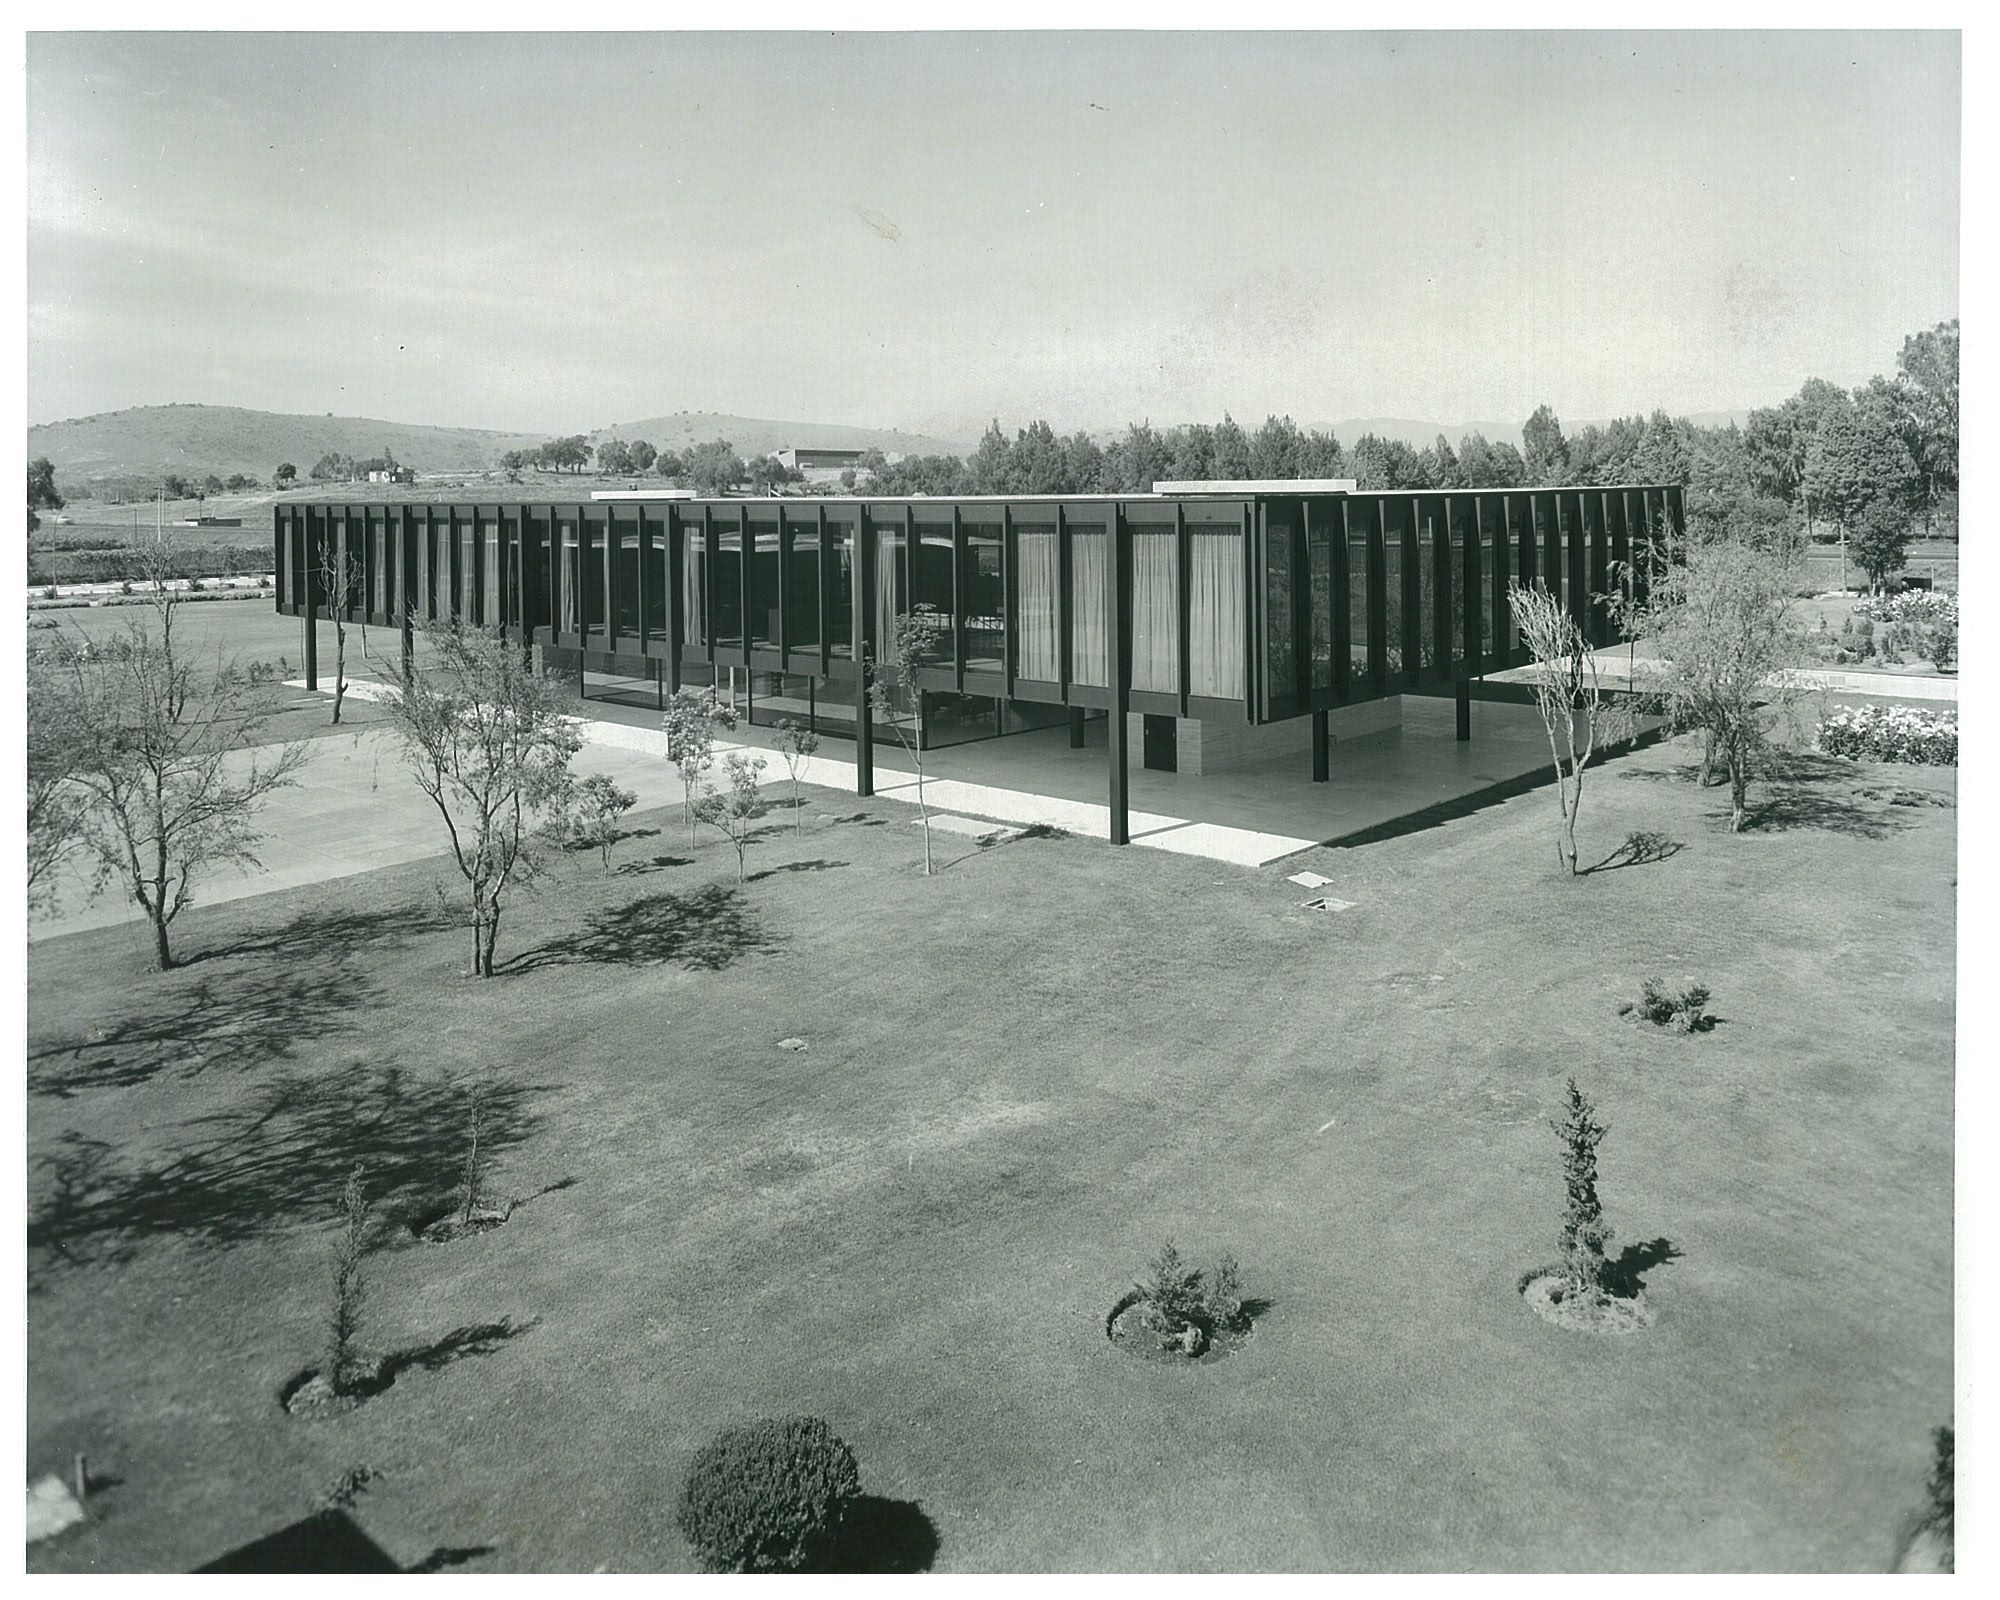 Bacardi Factory Mexico 1963 03 Cma - Projects